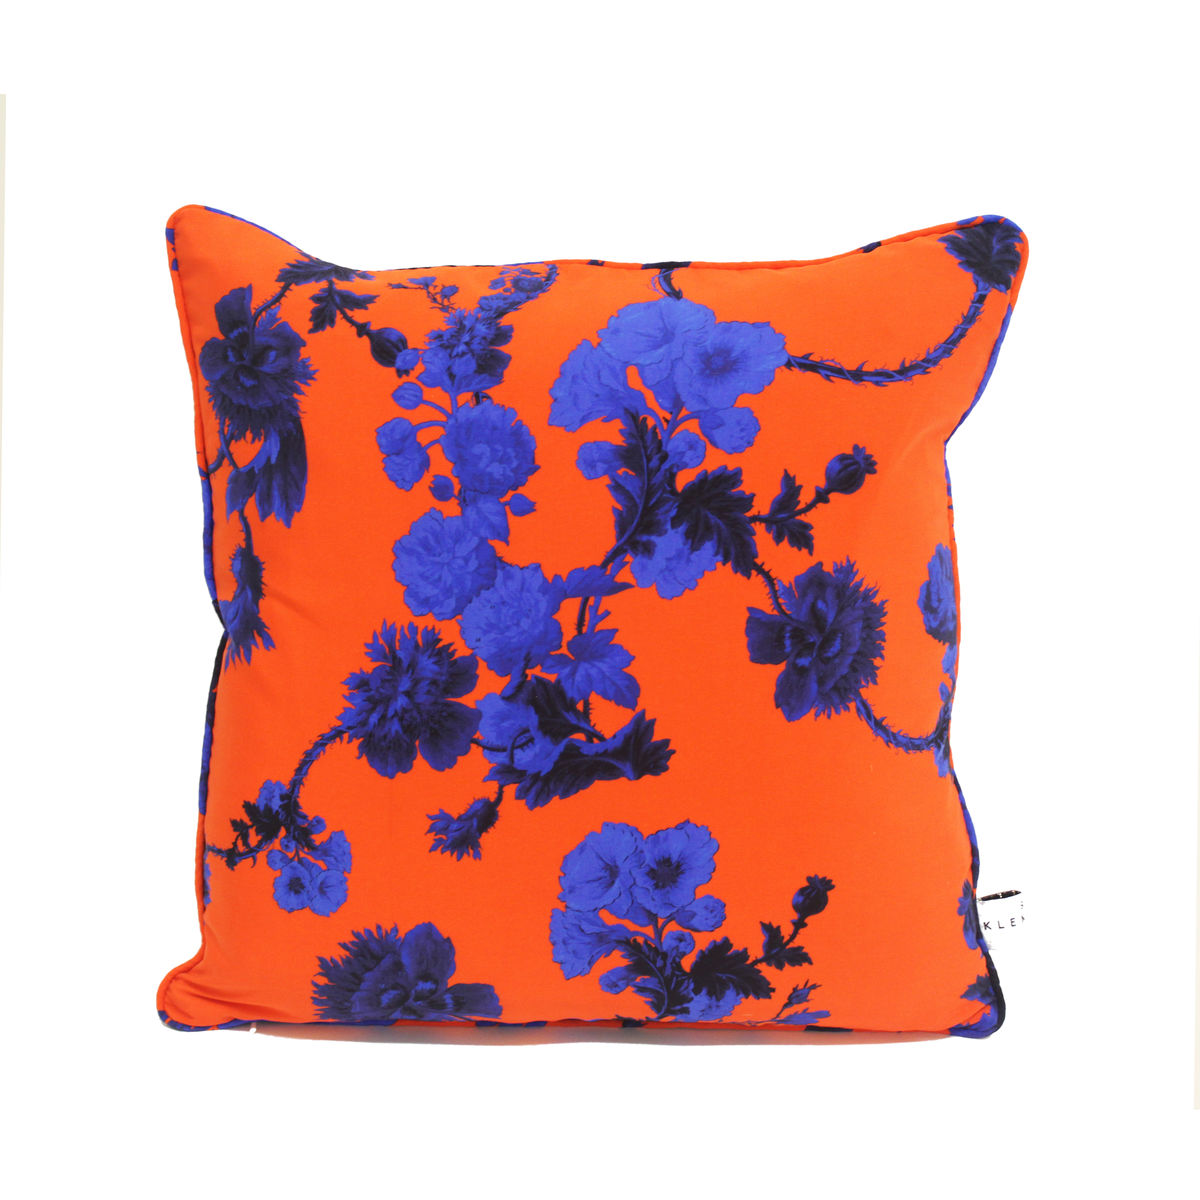 silk cushion, gothic floral red print 45 x 45cm - product images  of